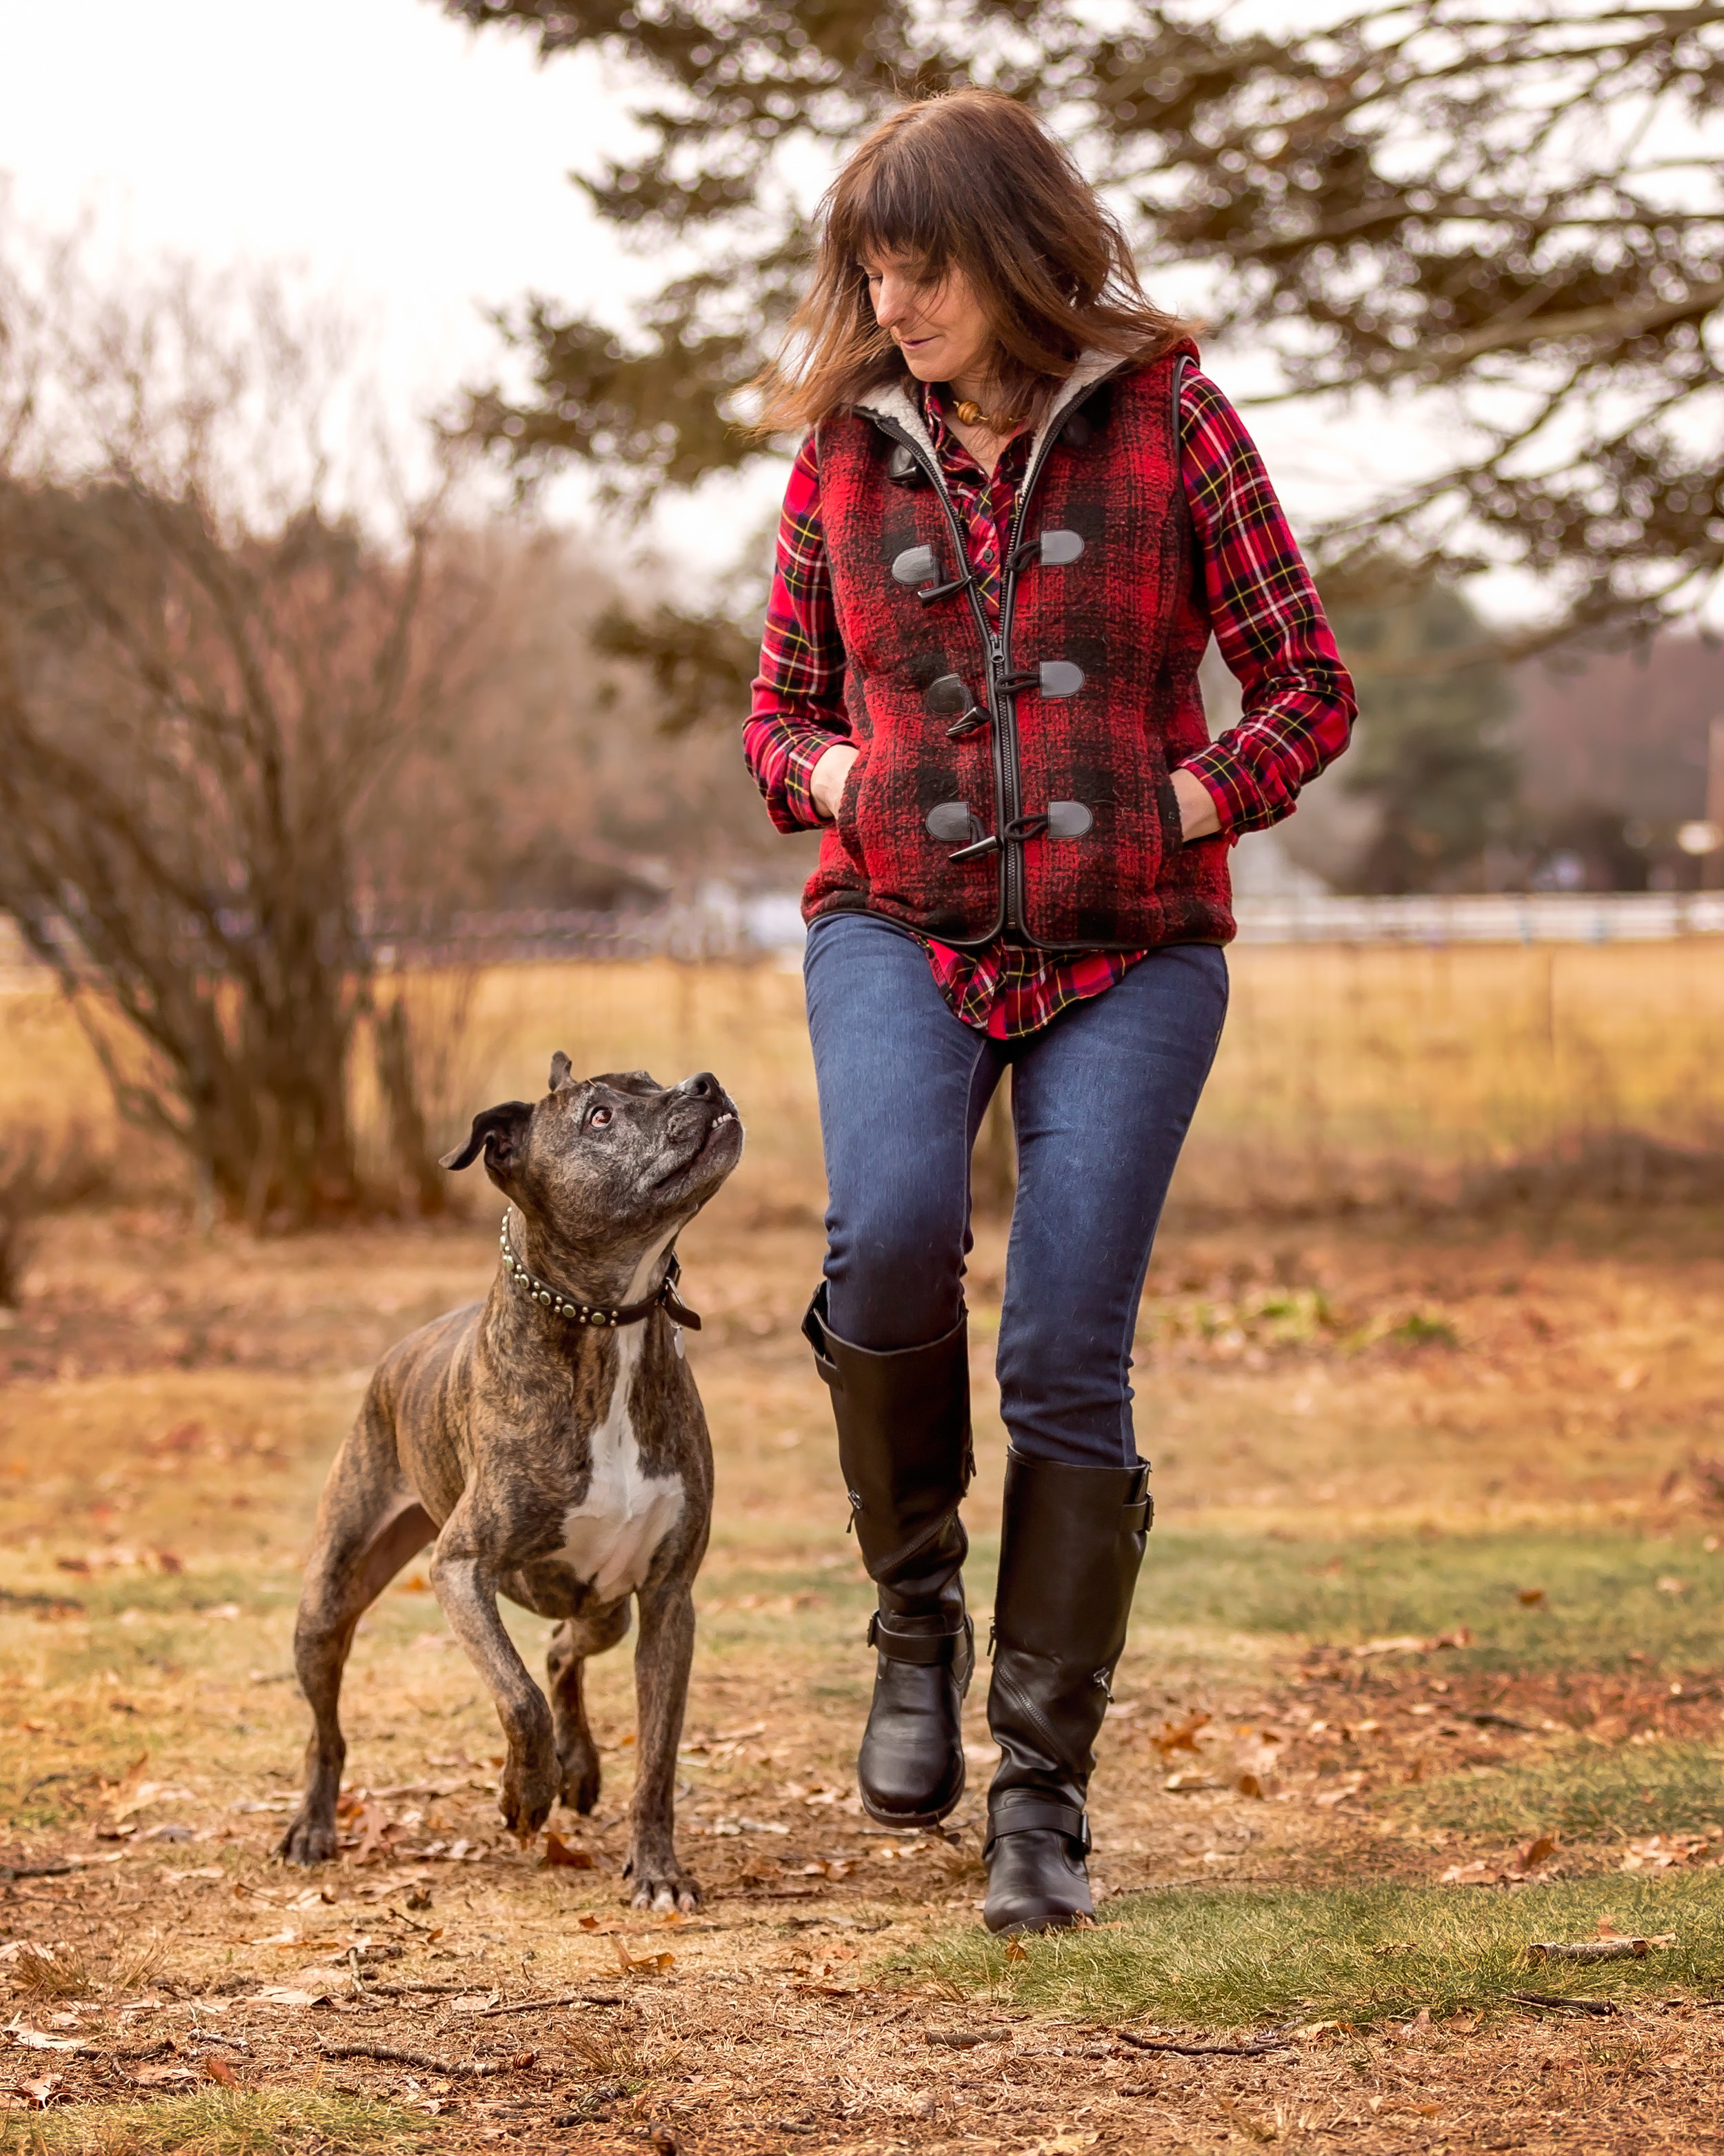 Jill and her dog Diego